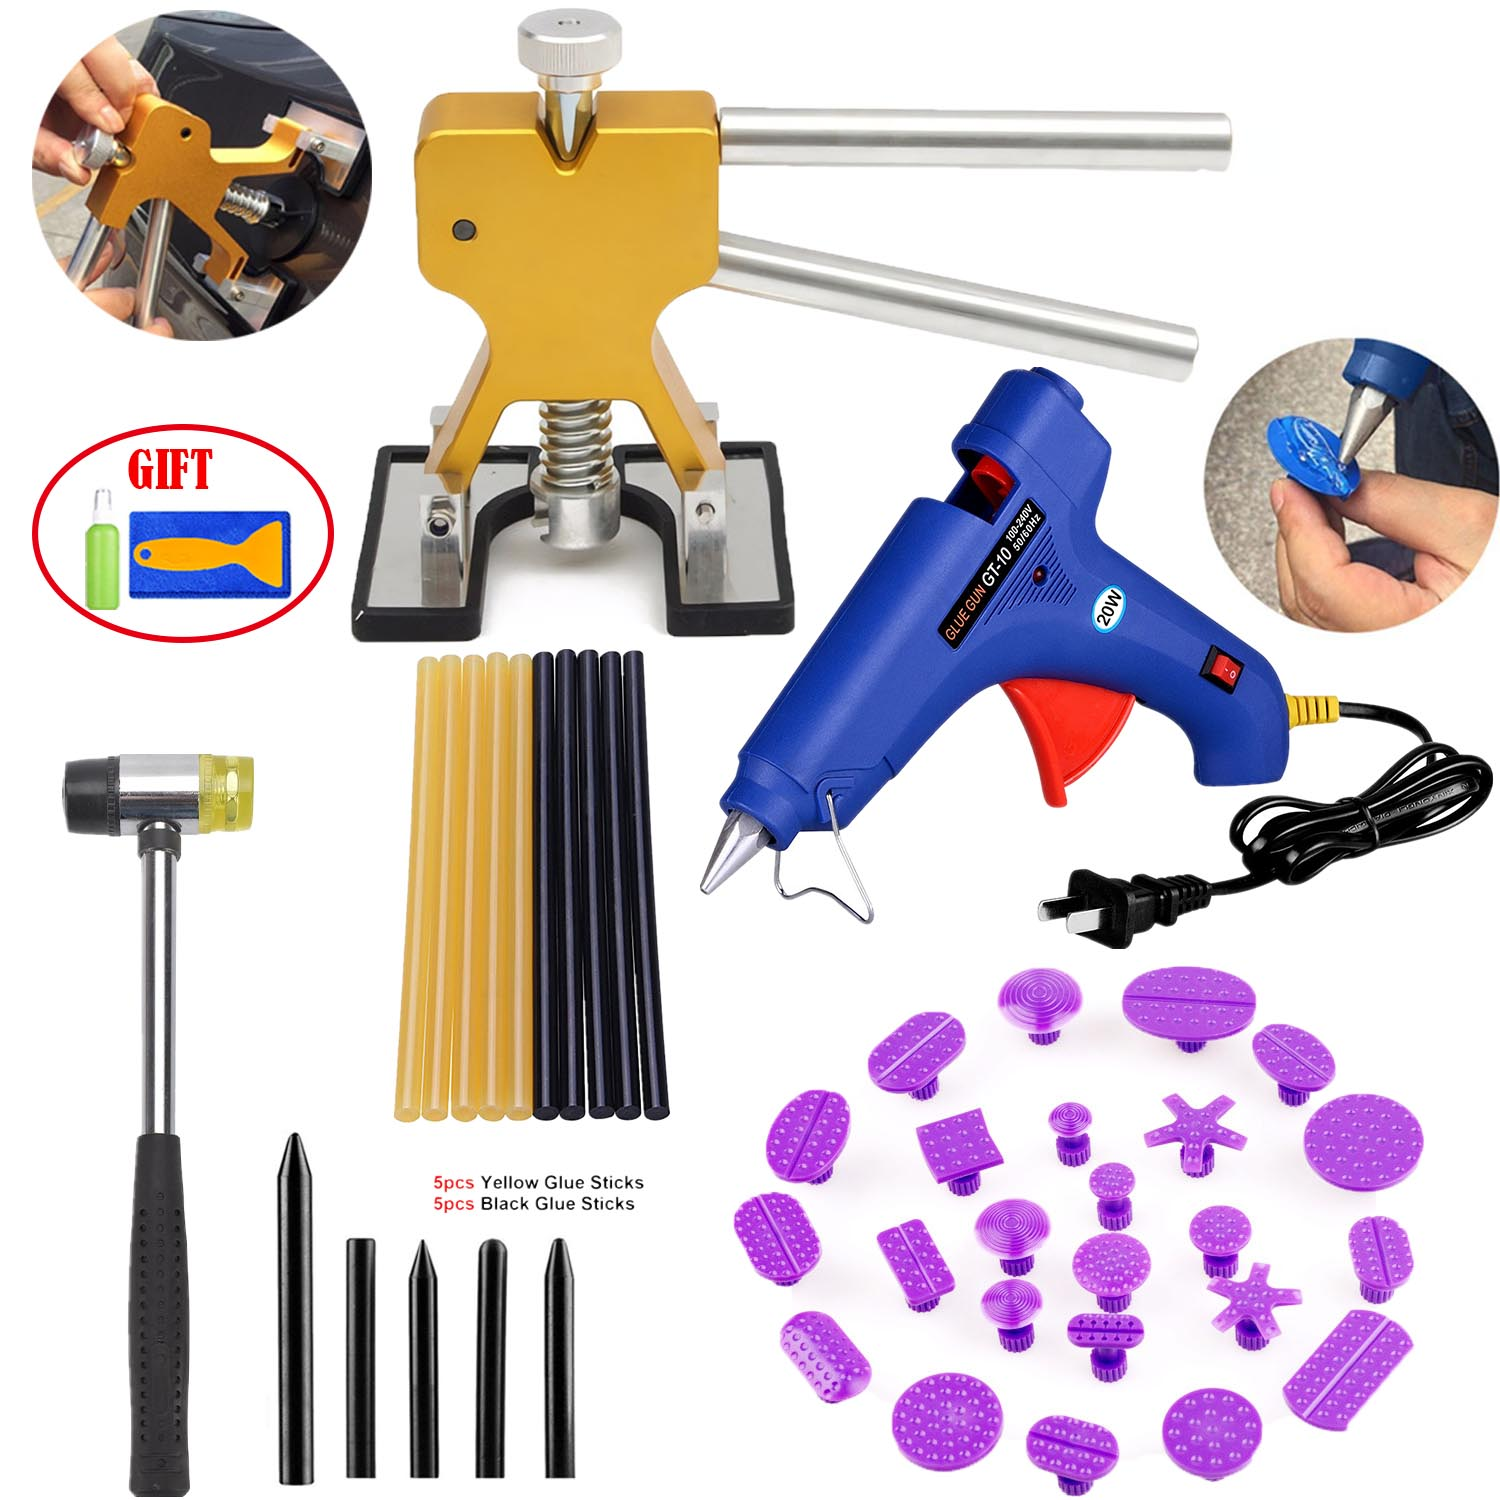 【Gifts for Him】Dent Repair Tools Paintless Dent Removal Kits Dent Lifter with Pulling Tabs Pro Hot Melt Glue Gun Tap Down Sets for Automobile Body Motorcycle